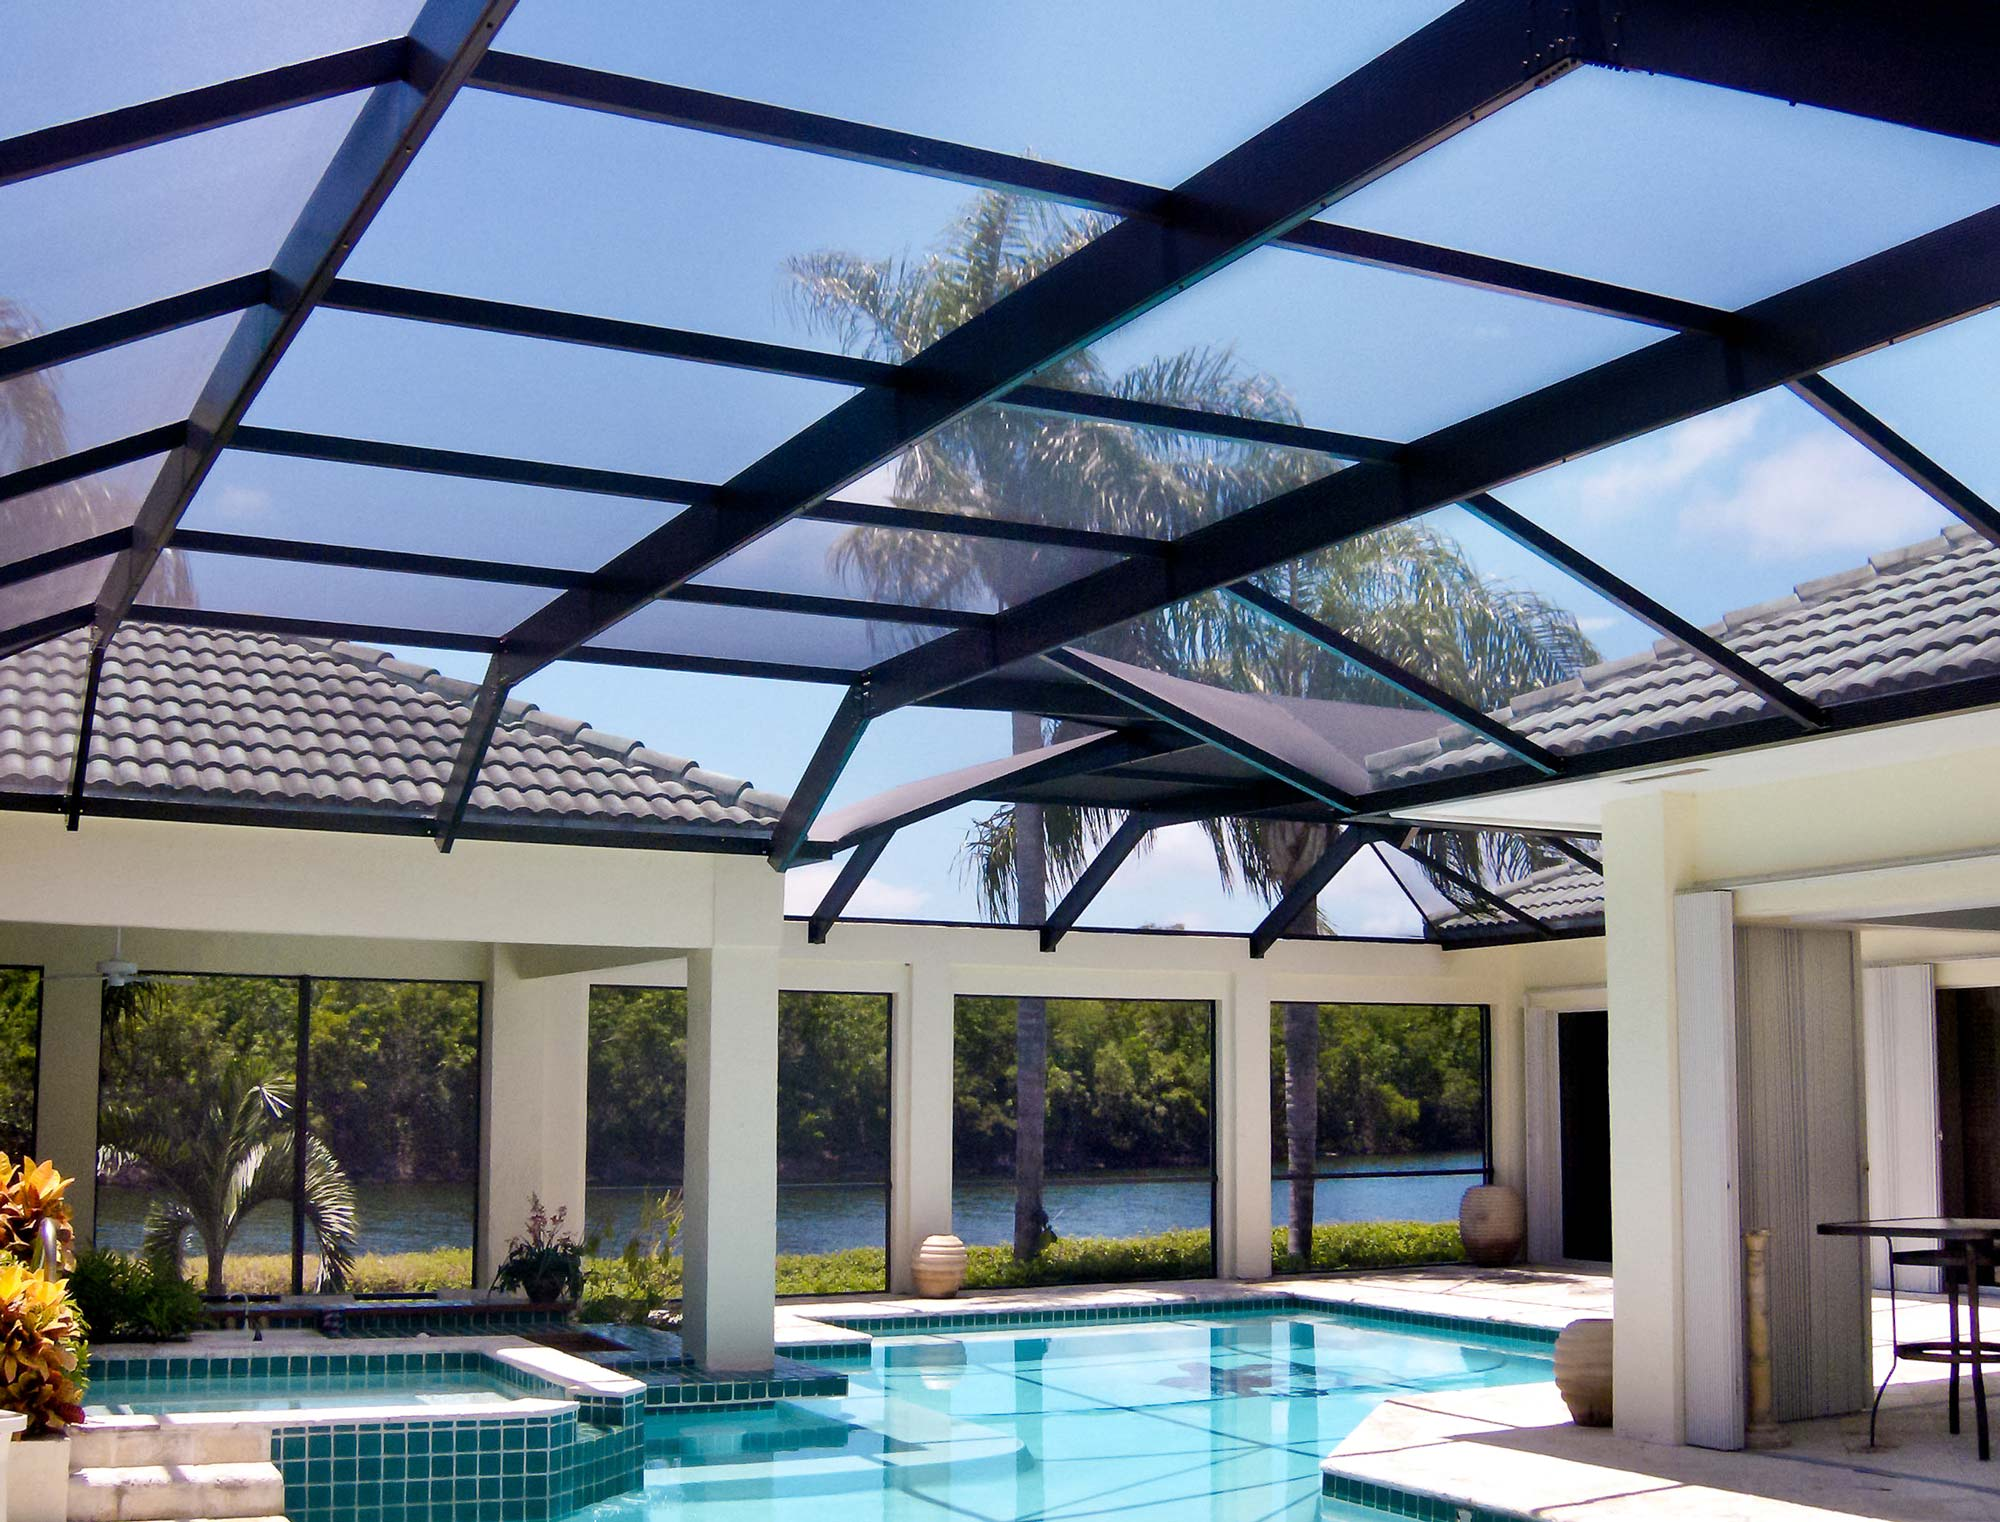 Create-an-outdoor-oasis-of-any-size-with-a-Screened-Pool-Enclosure-from-Venetian.